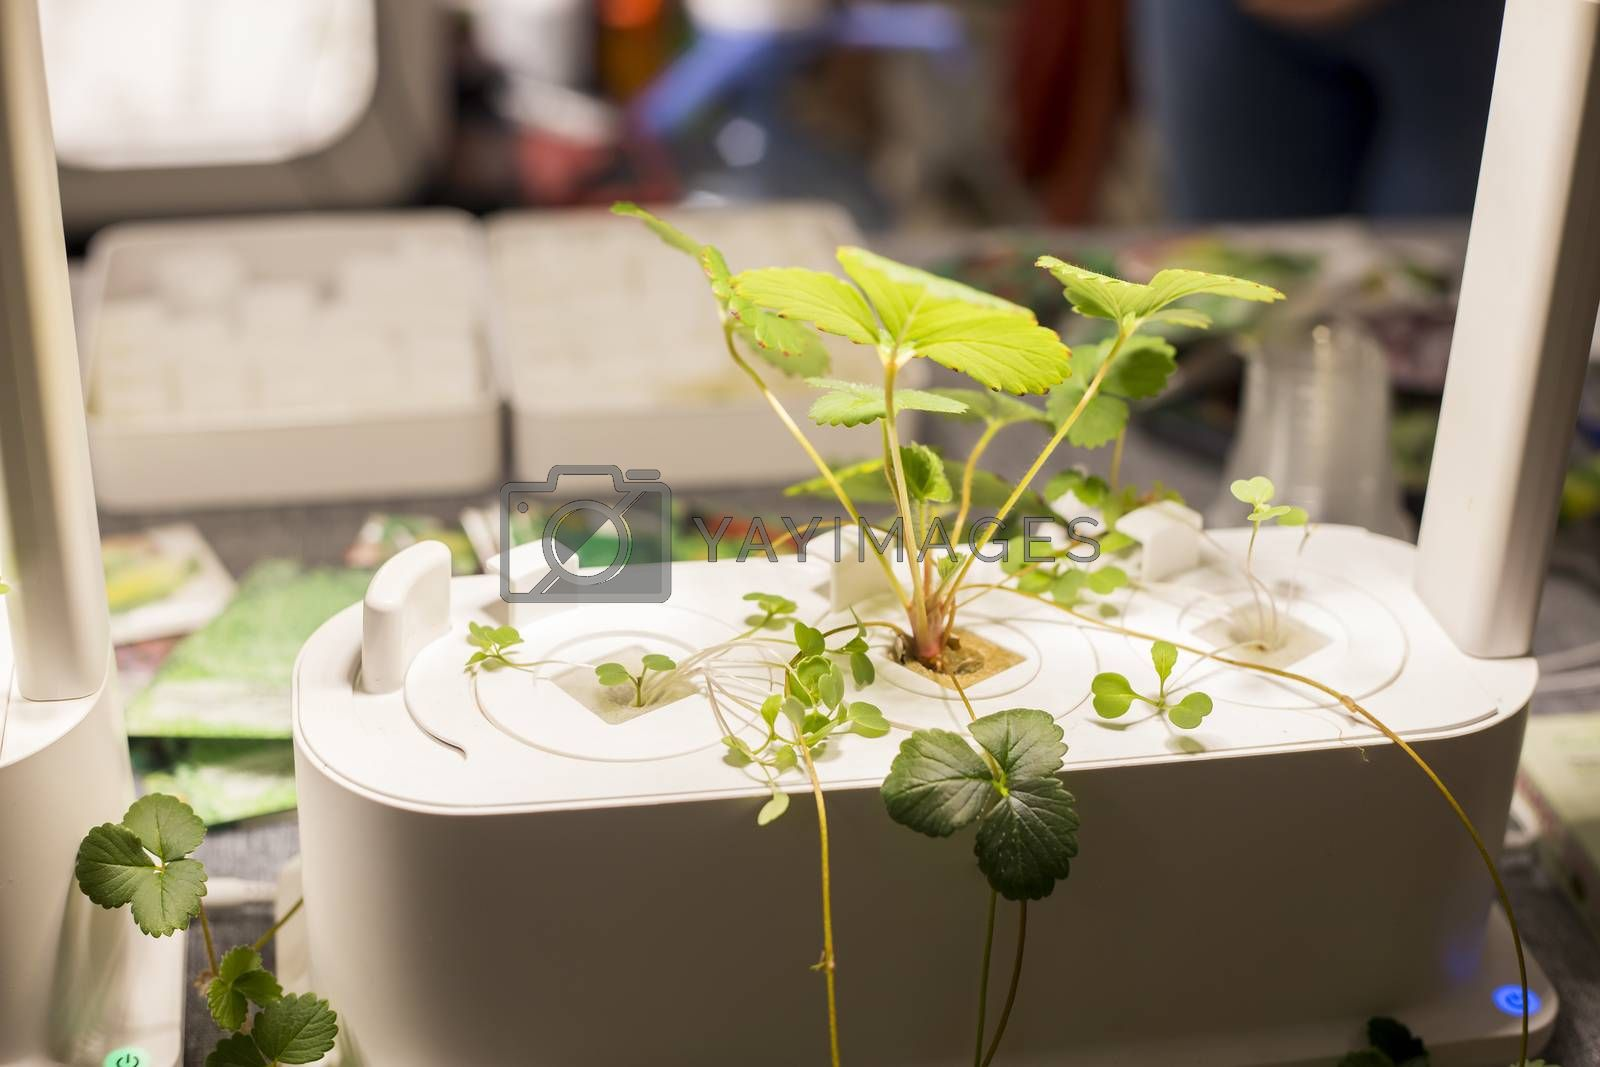 micro farm for growing plants at home, hydroponics with green sprouts, growing healthy eating concept at home garden.Soft focus